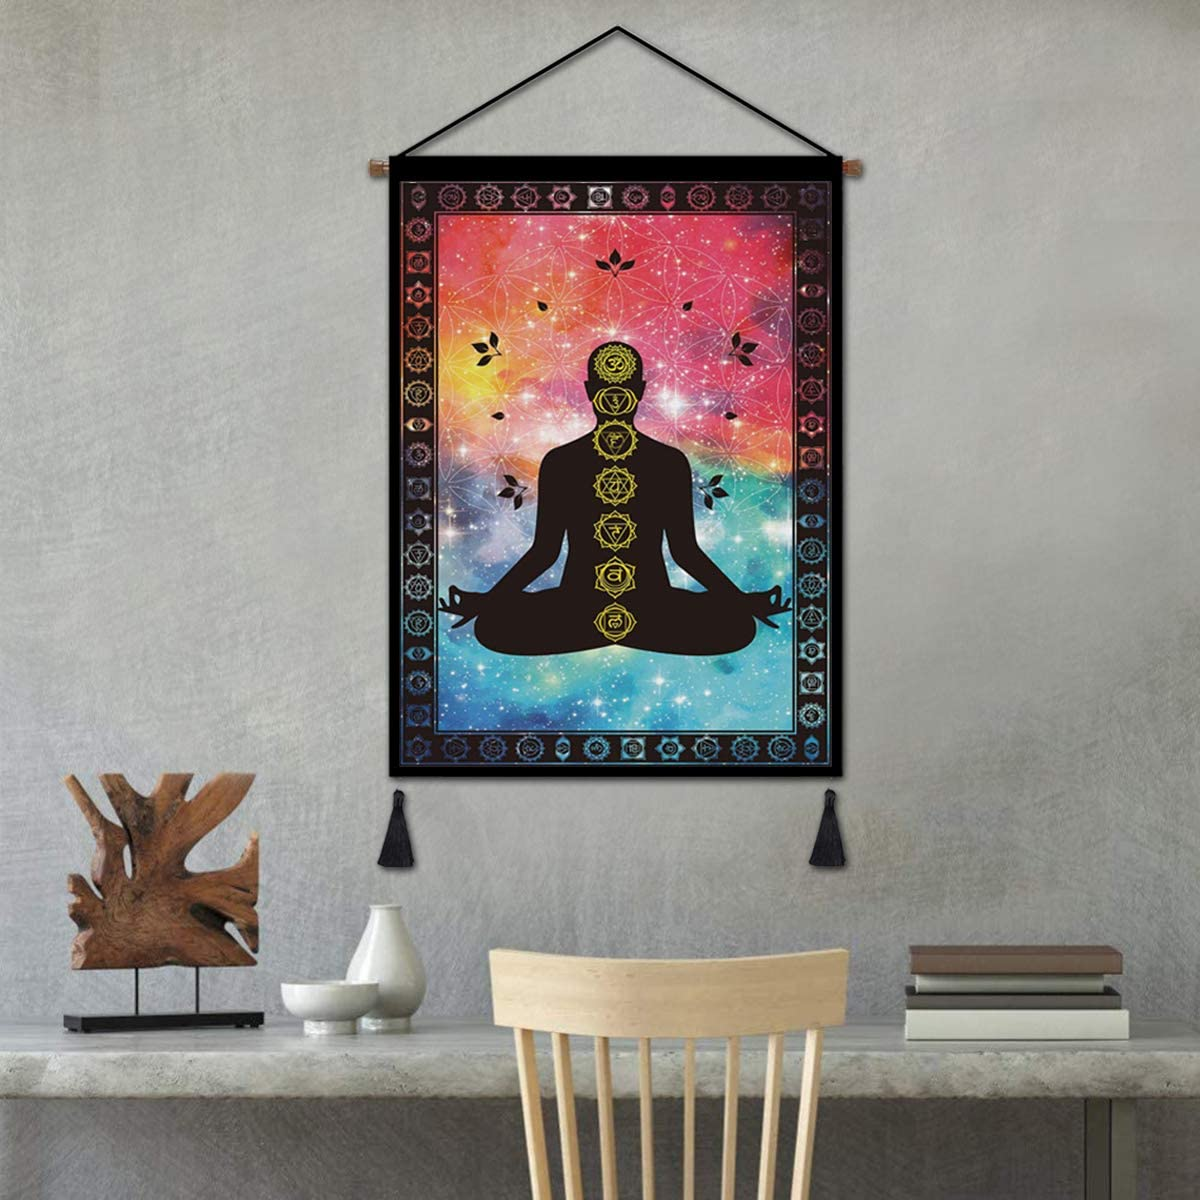 Seven Chakra Wall Hanging Poster Tie Dye Tapestry Yoga Meditation Studio Indian Decorations, Psychedelic Hippie Artwork for Living Room Bedroom Office Ready to Hang - 18x26in